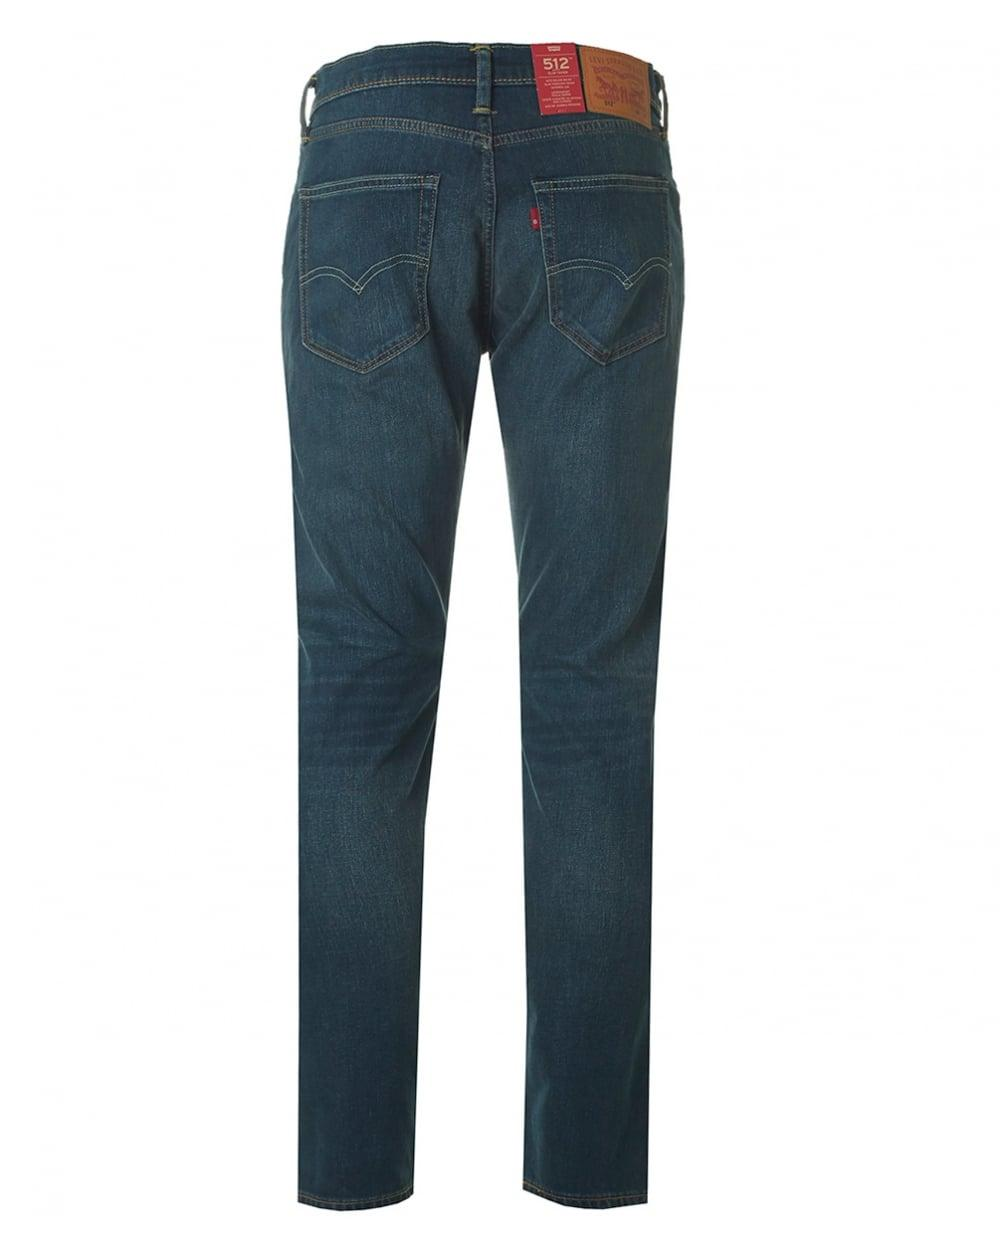 Levis 512 Slim Tapered Fit Jeans In Blue For Men Lyst